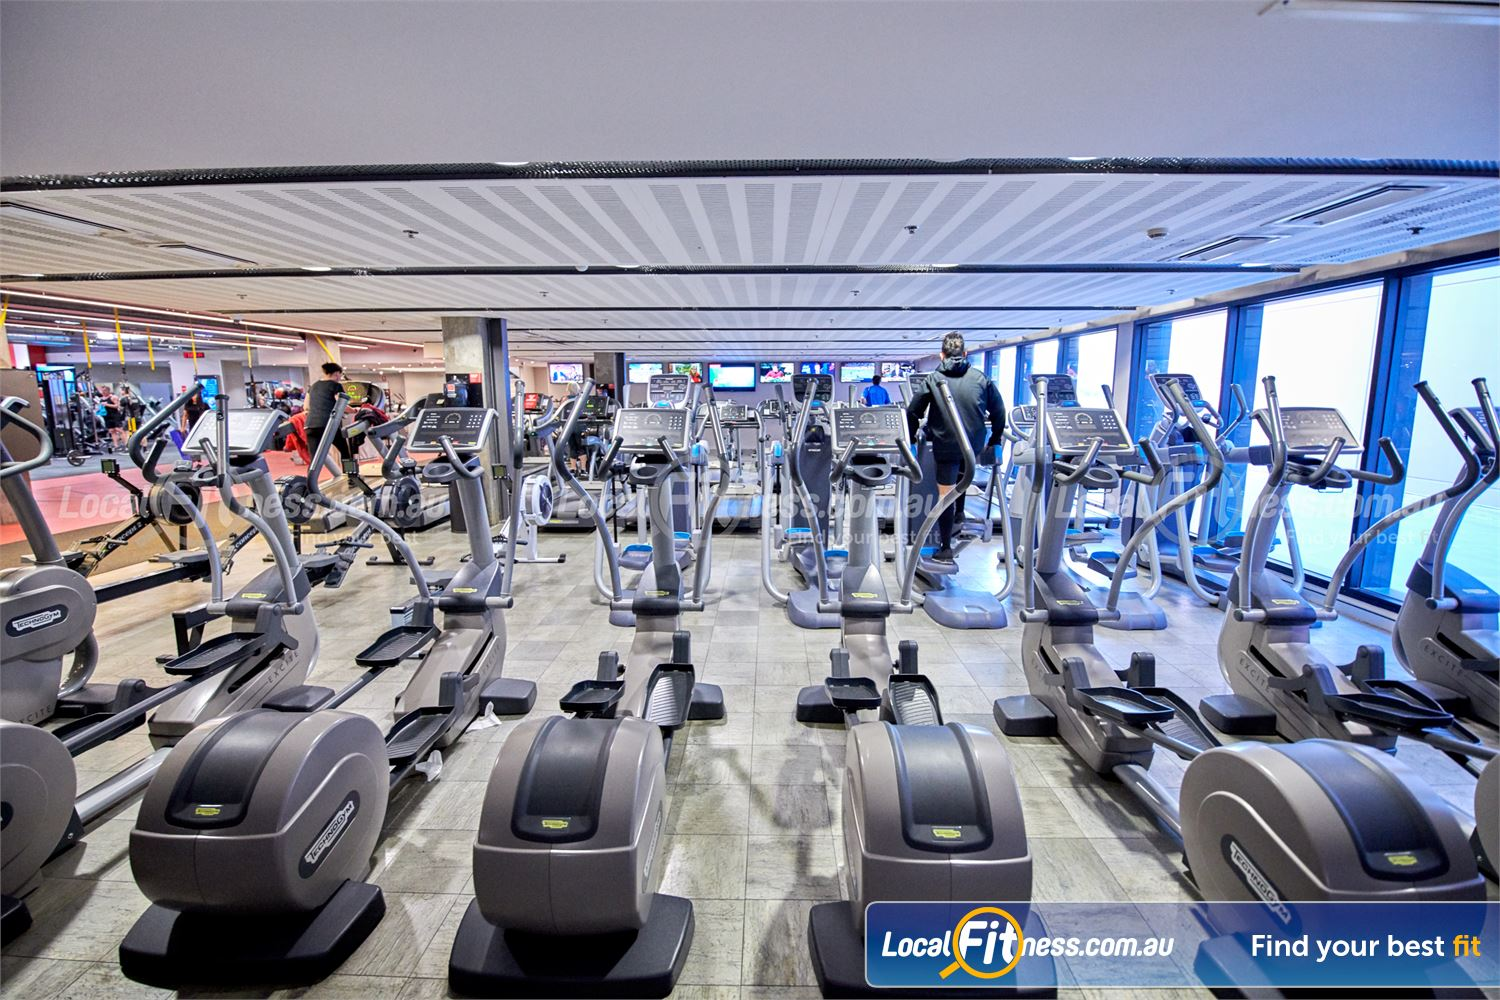 Fitness First Victoria Gardens Richmond State of the art cardio equipment from Technogym, Precor, Concept 2 and more.